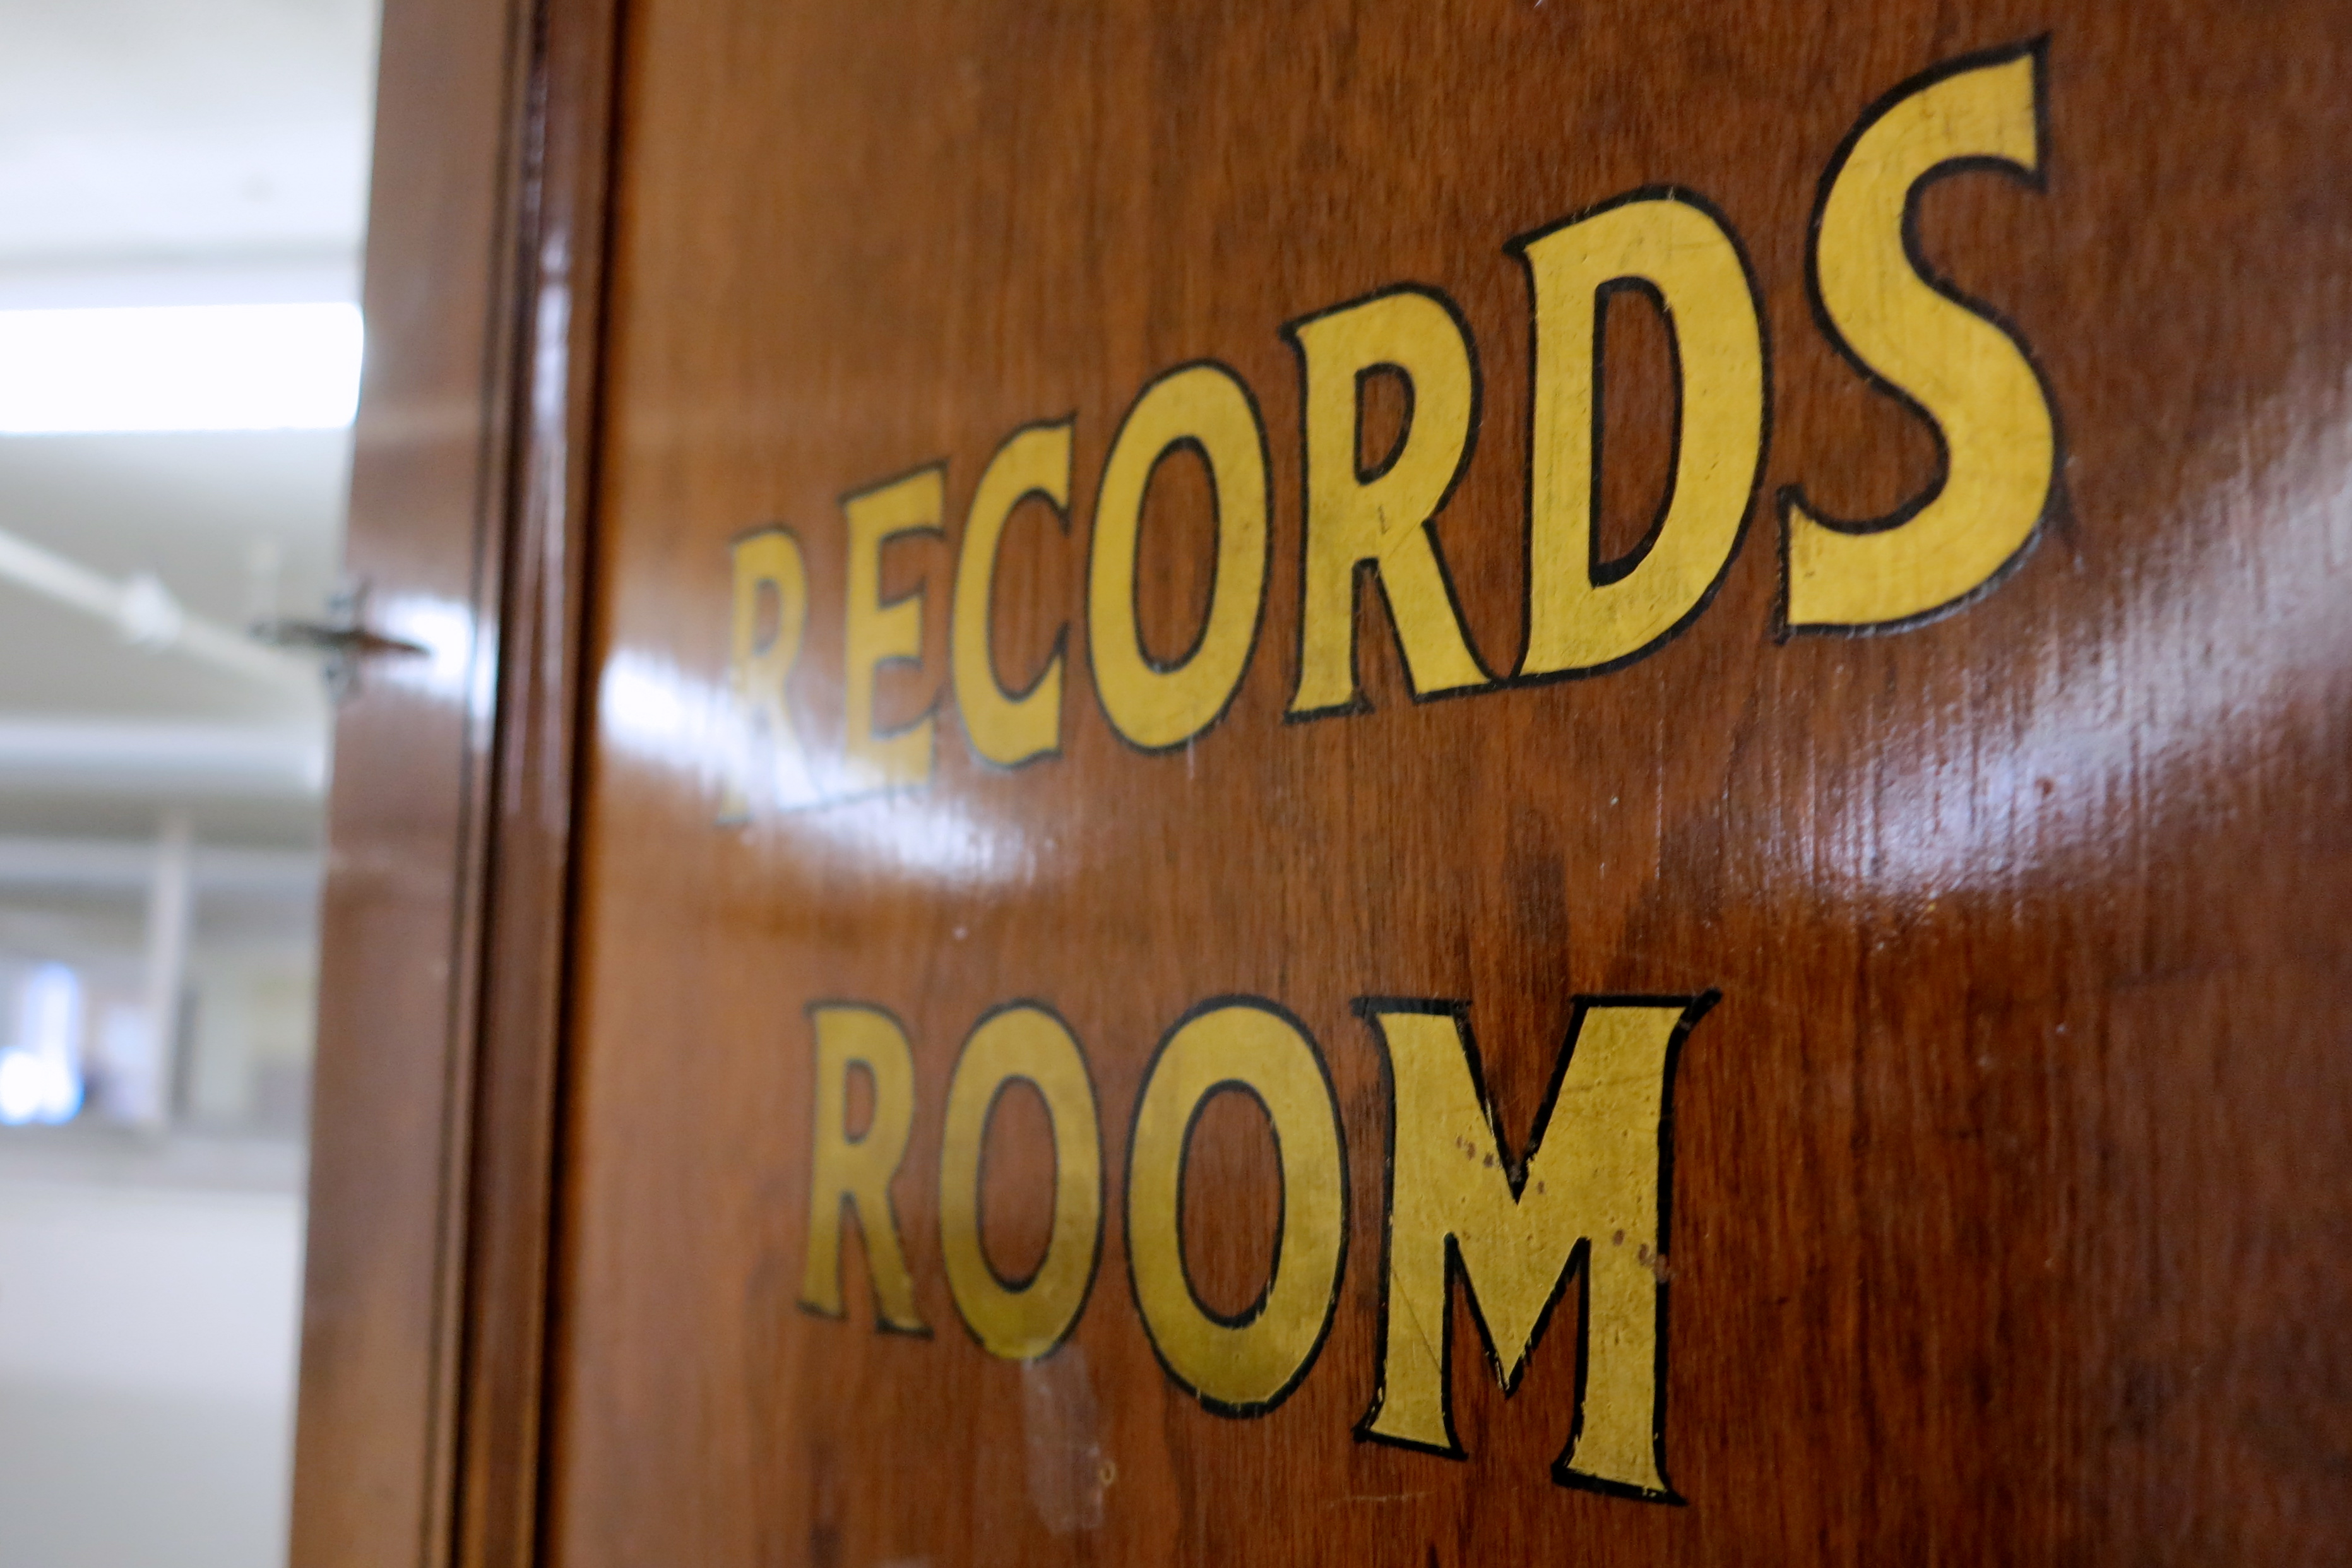 Records Room